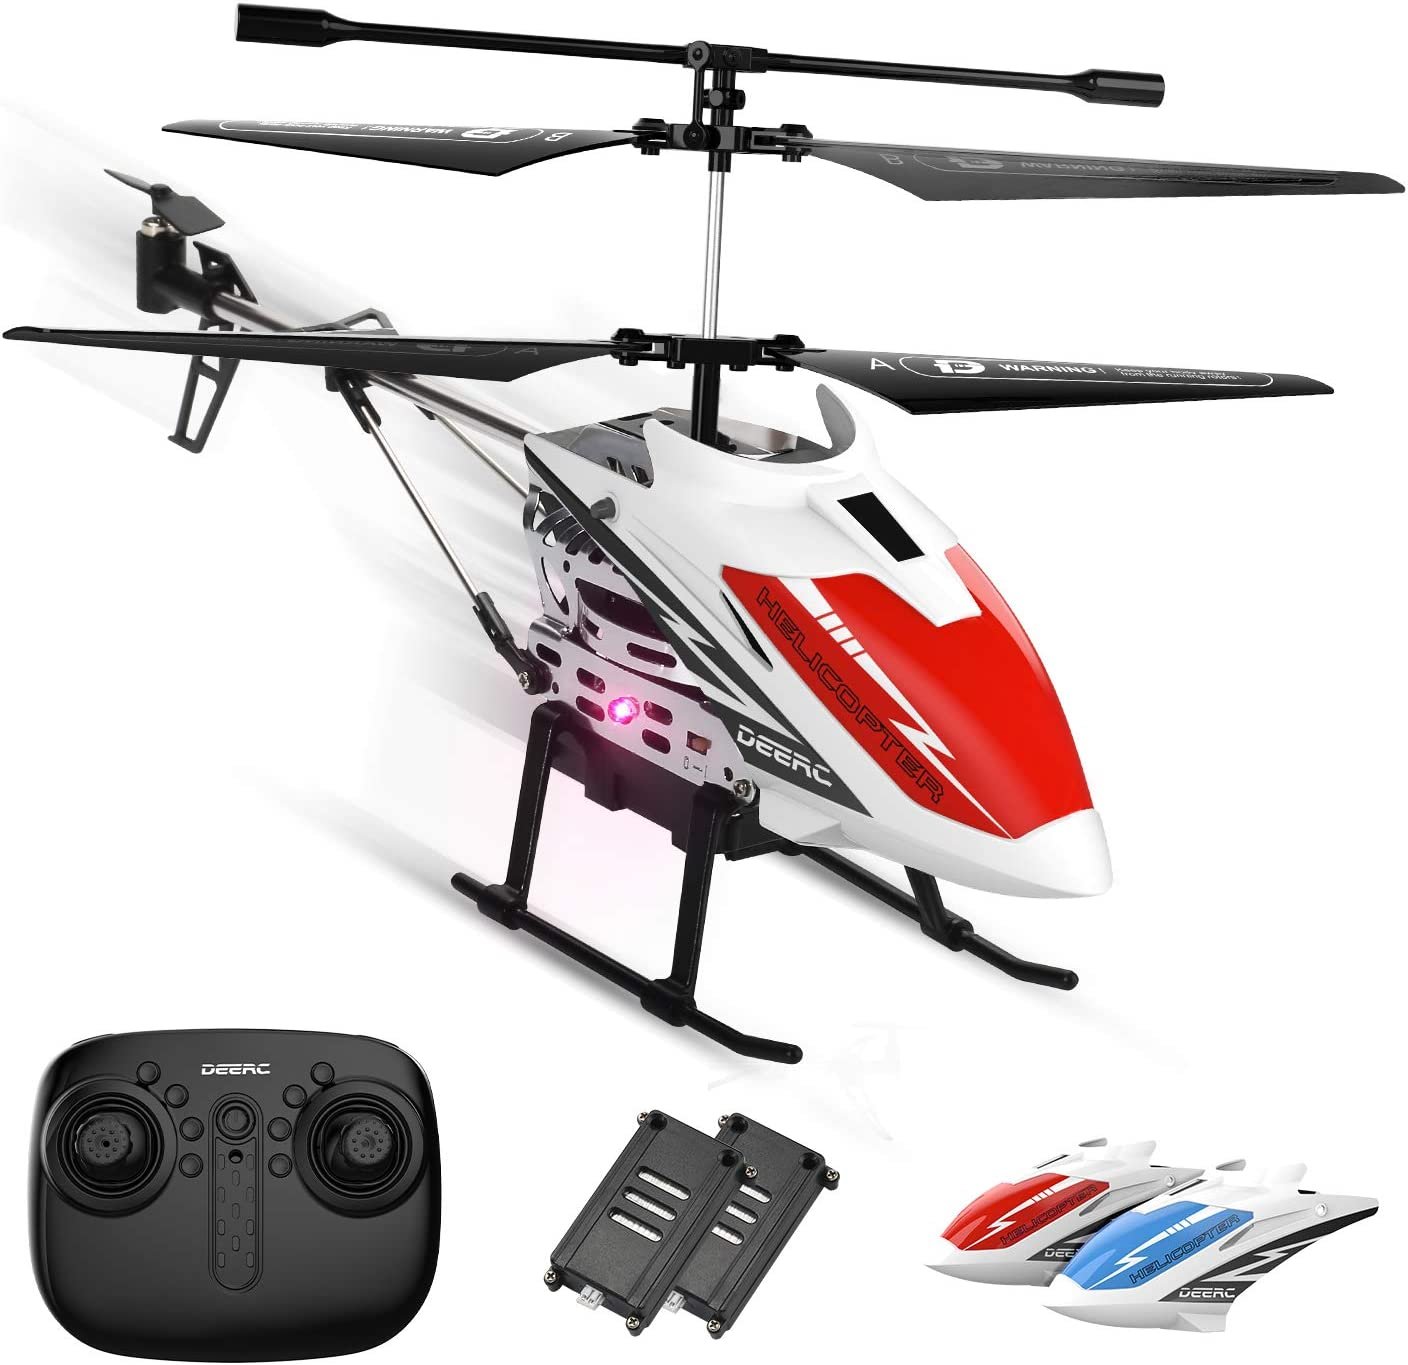 Amazon.com: DEERC DE51 Remote Control Helicopter Altitude Hold RC Helicopters with Gyro for Adult Kid Beginner,2.4GHz Aircraft Indoor Flying Toy with 3.5 Channel,High&Low Speed,LED Light,2 Battery for 20 Min Play: Toys &